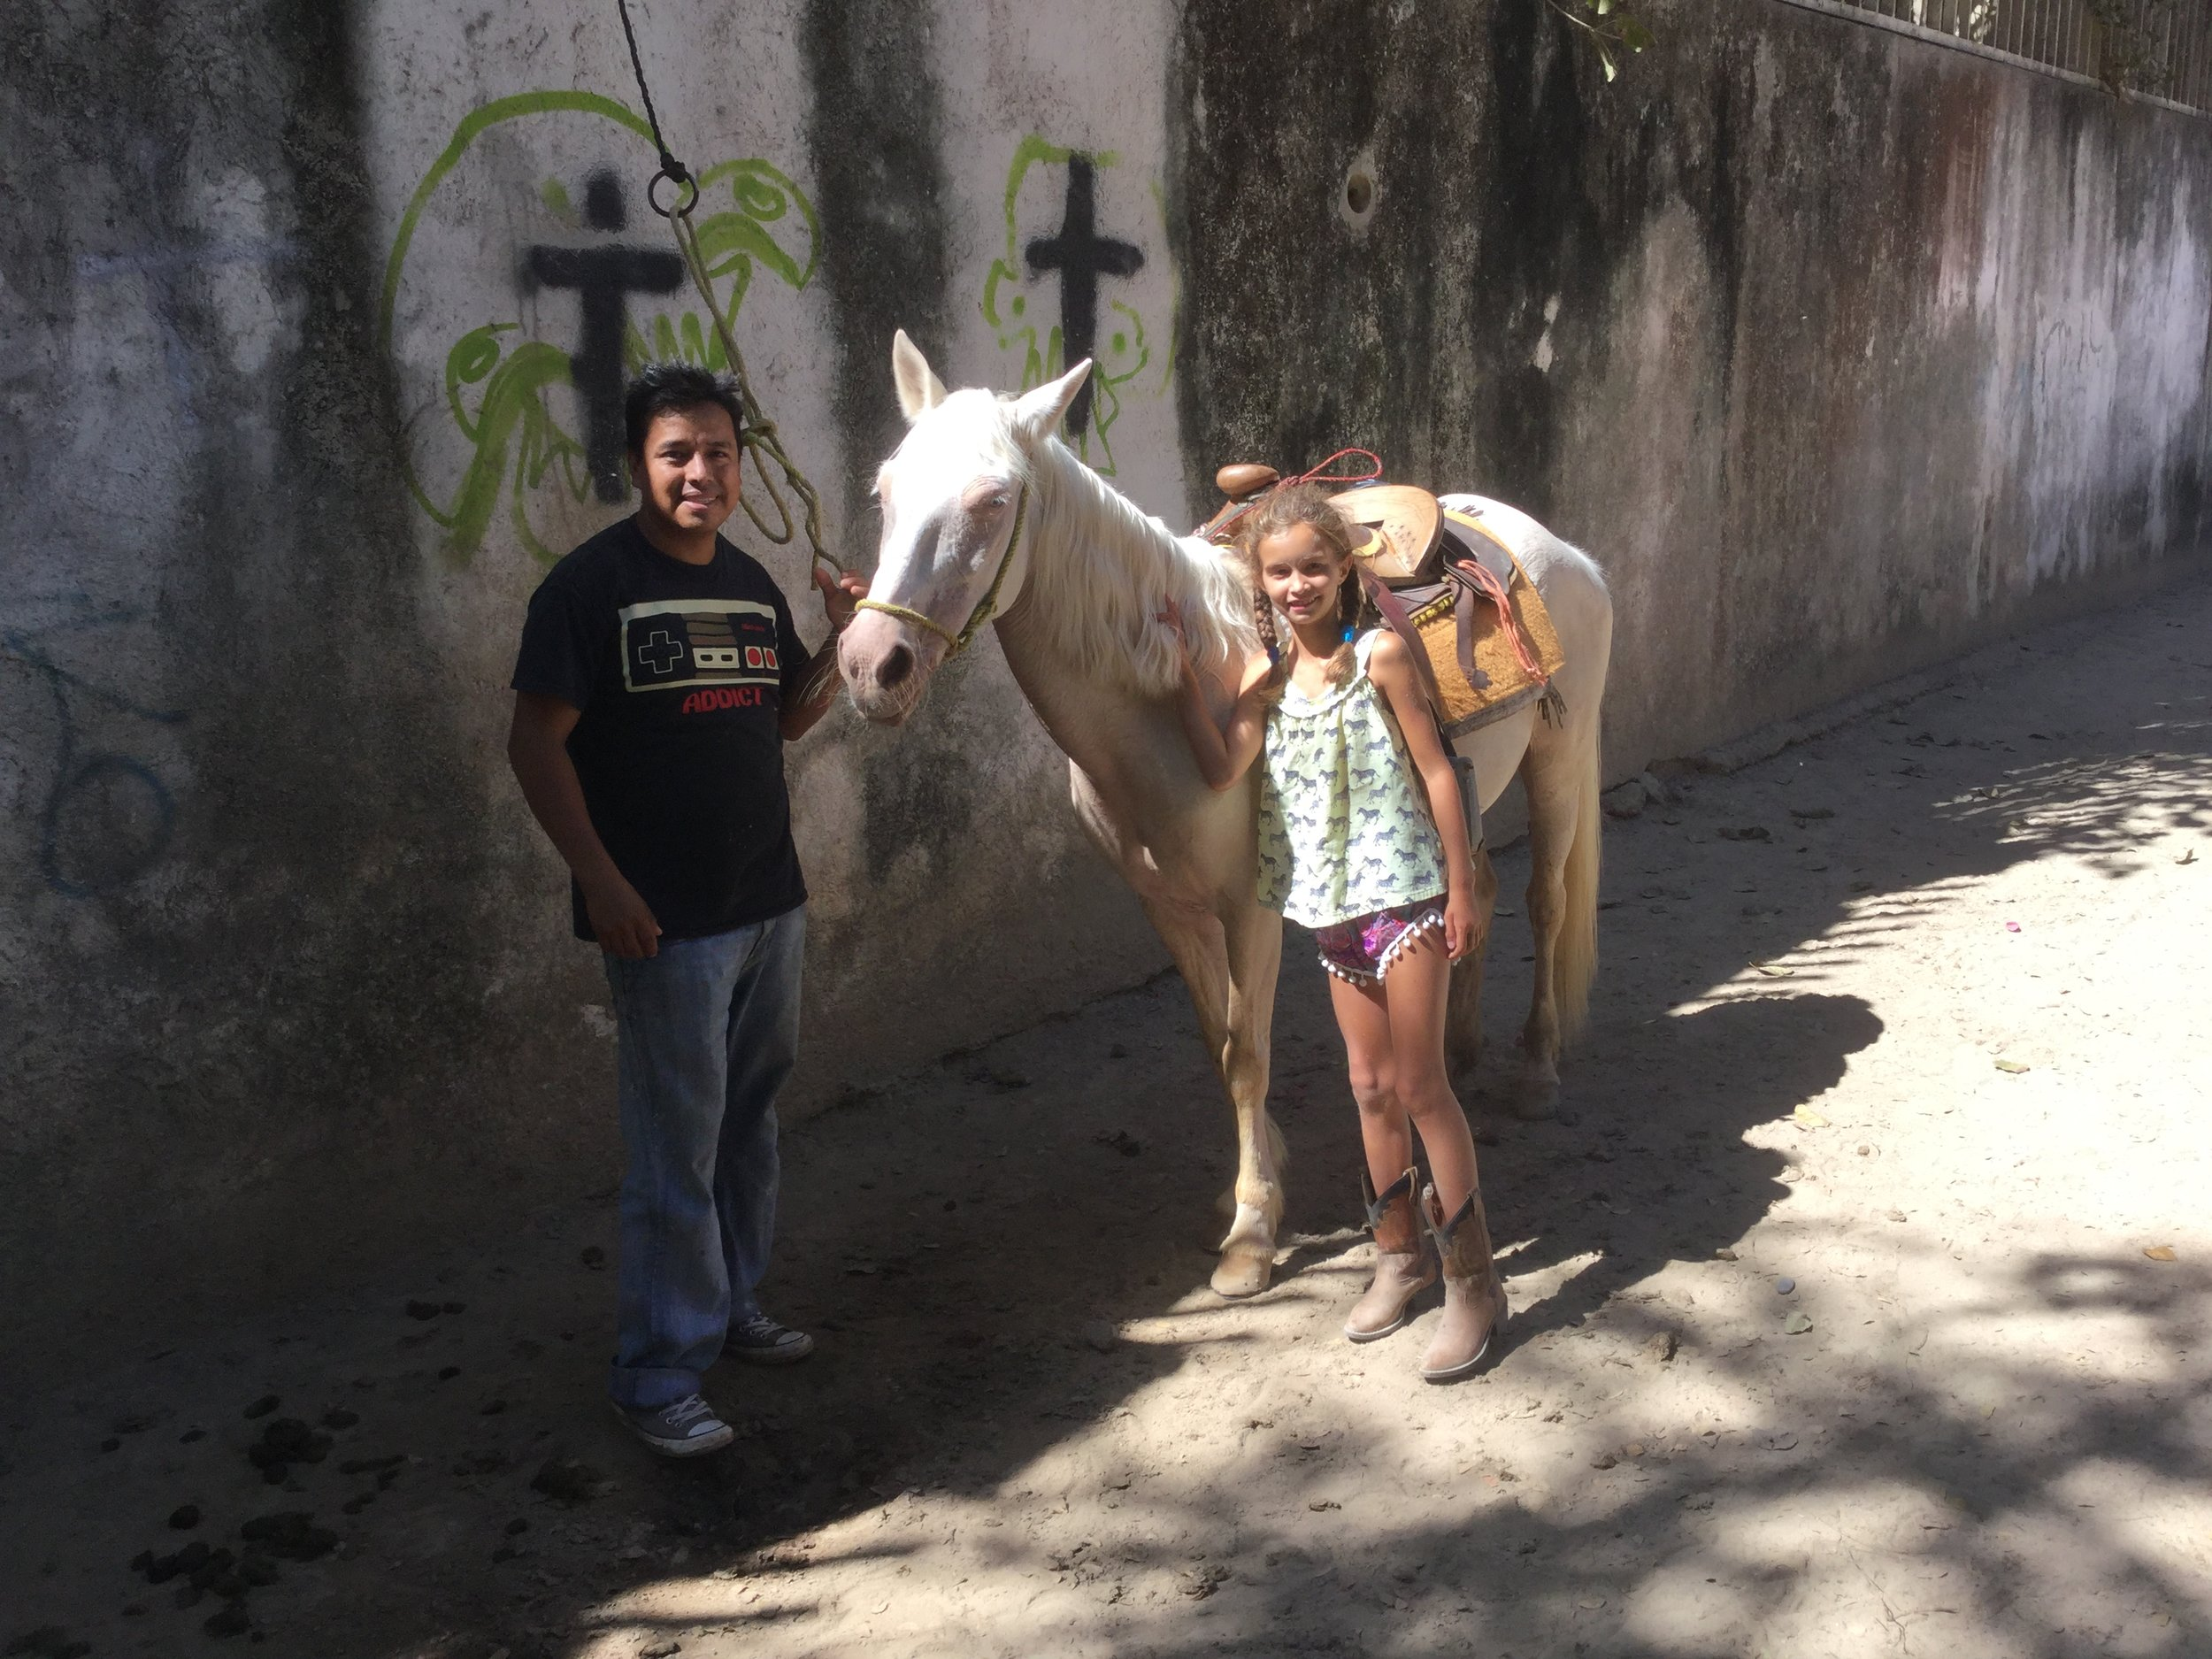 This is Jehu with Lili after one of the rides. This horse is Chilindrina - and she is also pregnant. Other horses that Lili rode were Galleta, and Lucero. Chava normally rode Mariposa and Jehu rode Cuervo or sometimes Scorpion. There was also Coqueta (that had the colt) and Susana (John from Texas rode Susana).